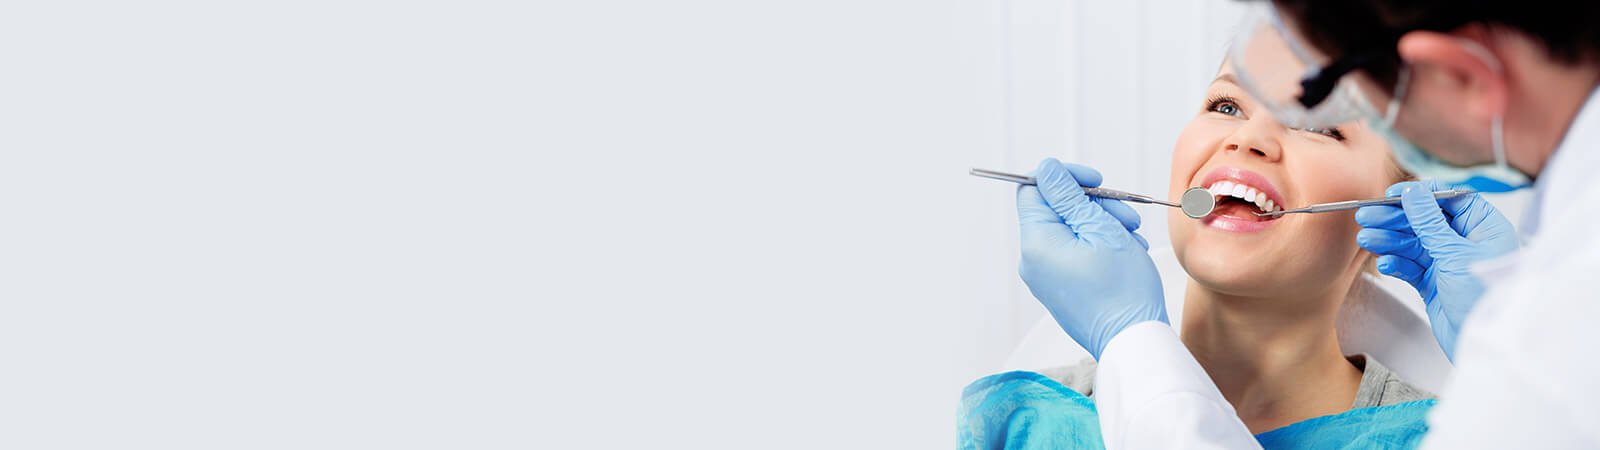 Dentist near me in Los Altos, CA offers dental implant services, including placement and restoration